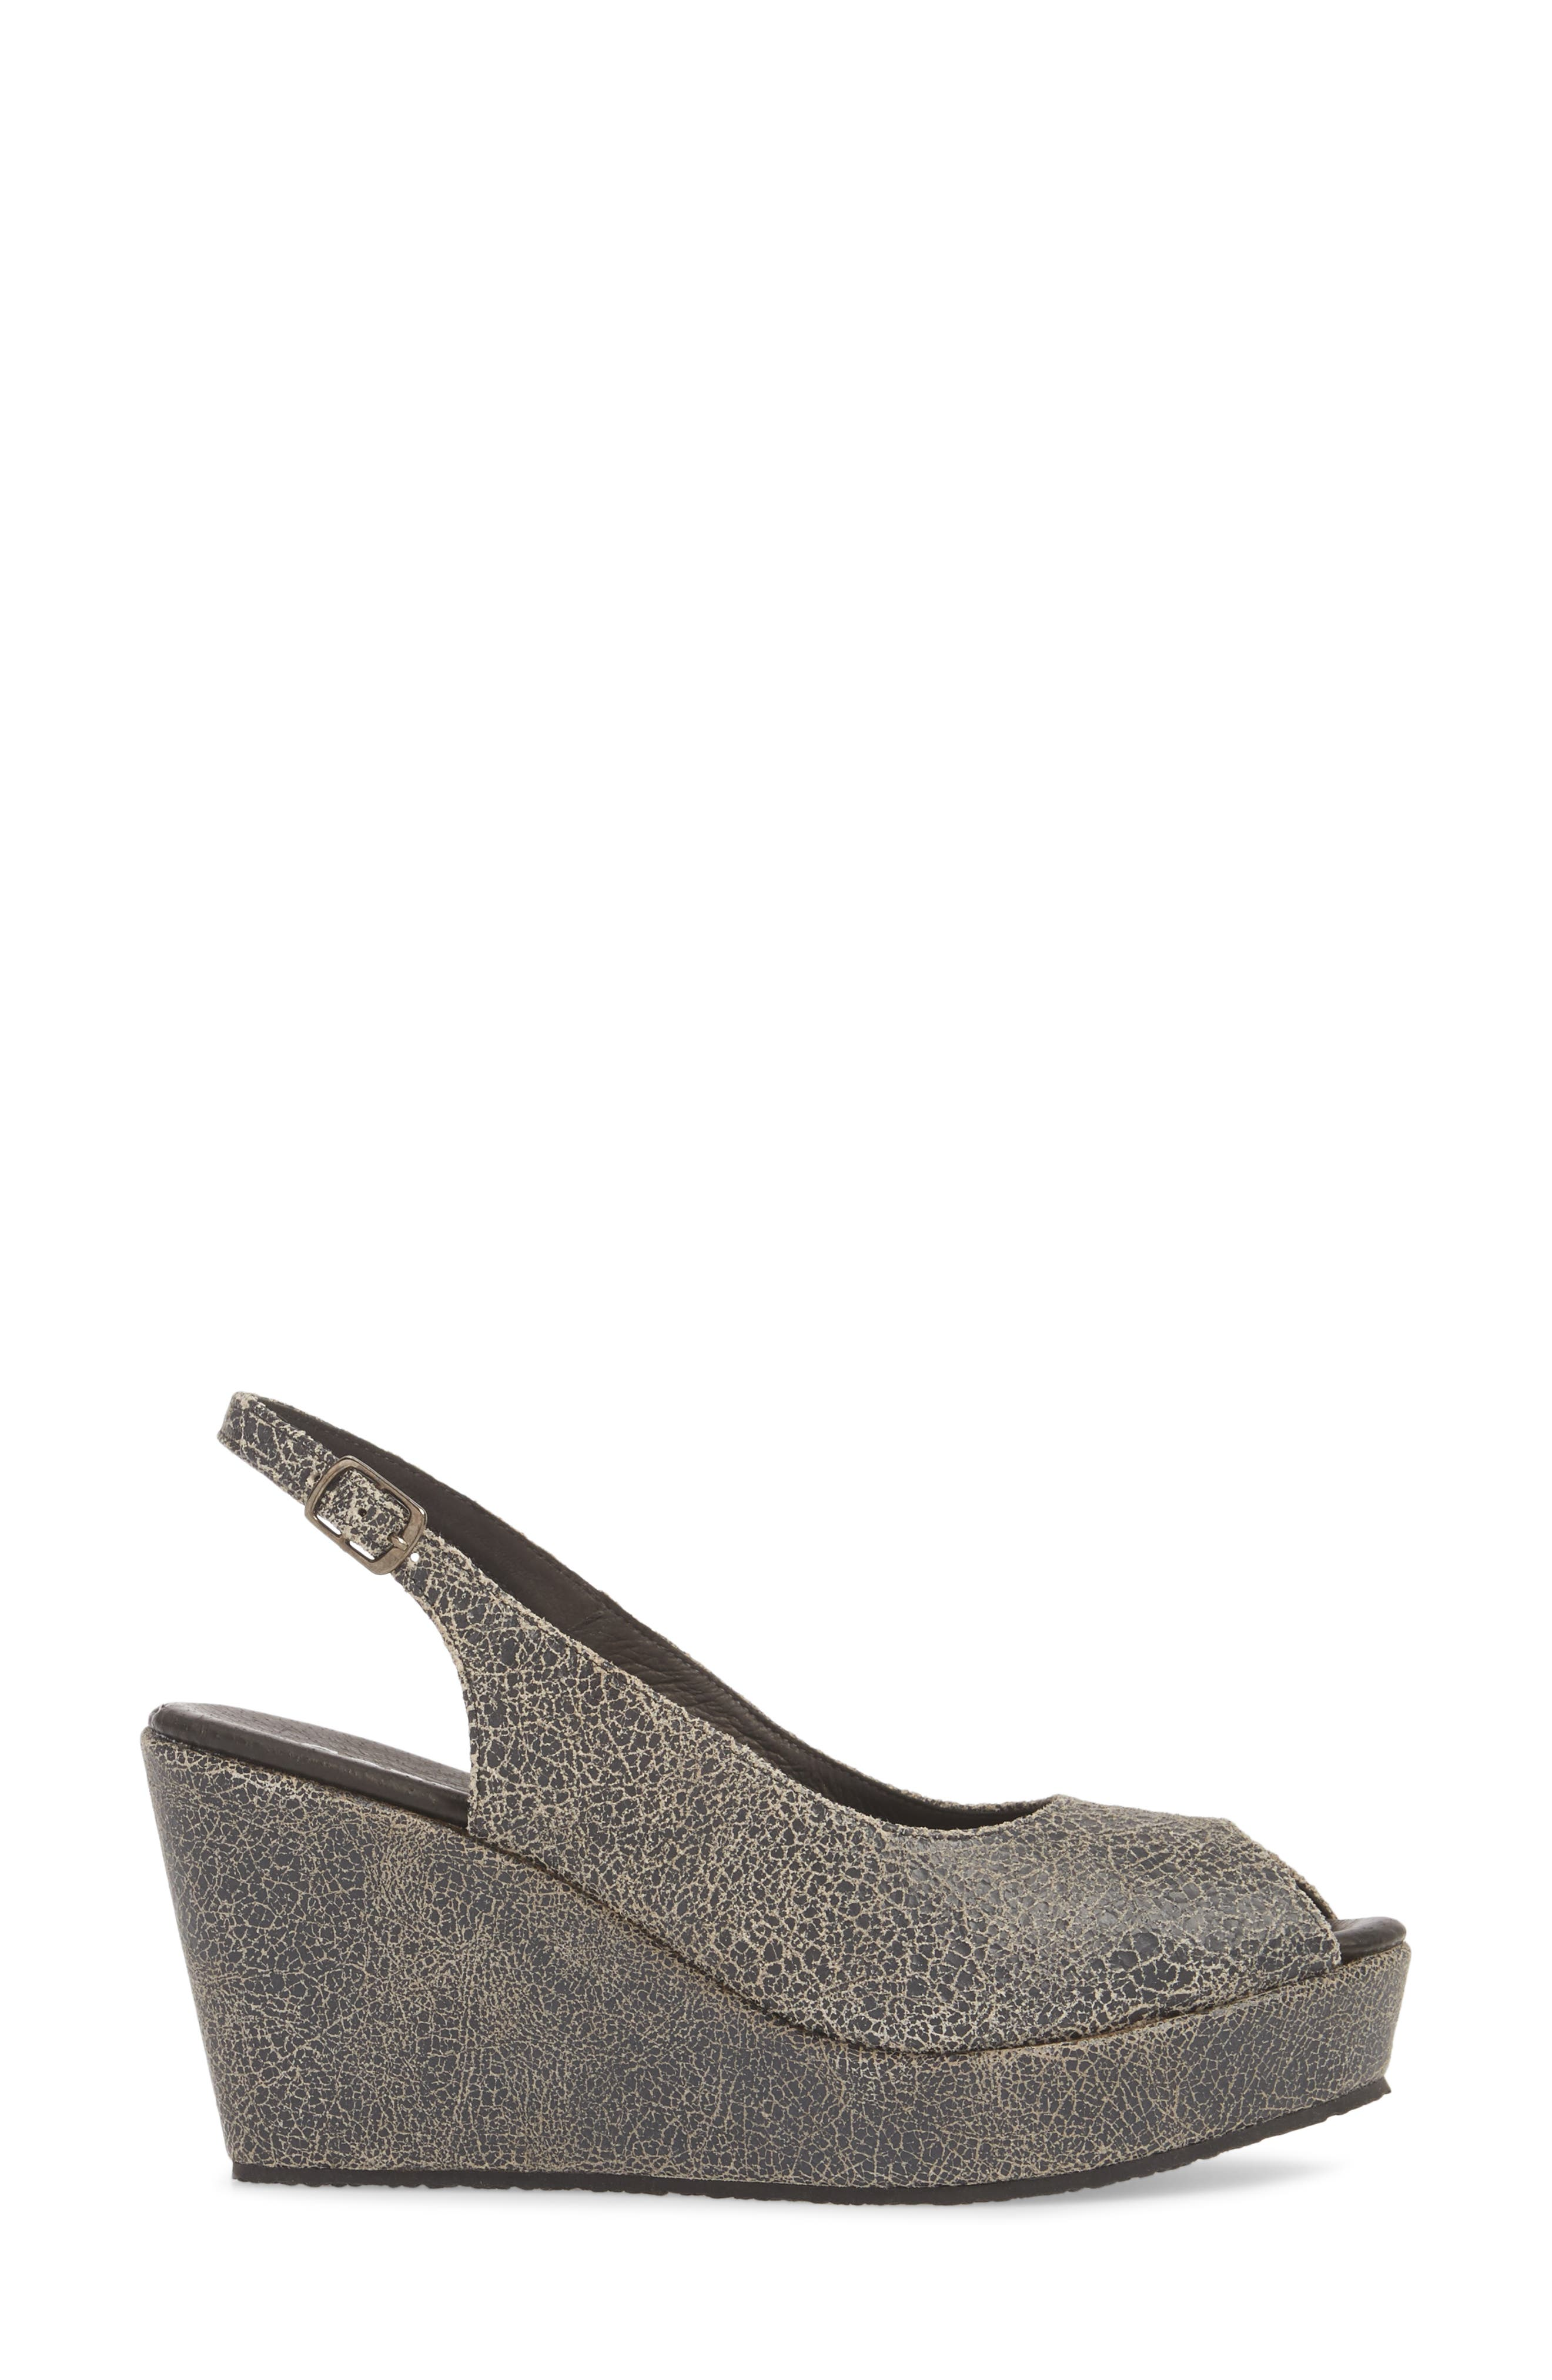 Fabrice Slingback Platform Sandal,                             Alternate thumbnail 3, color,                             GREY CRACKLE LEATHER